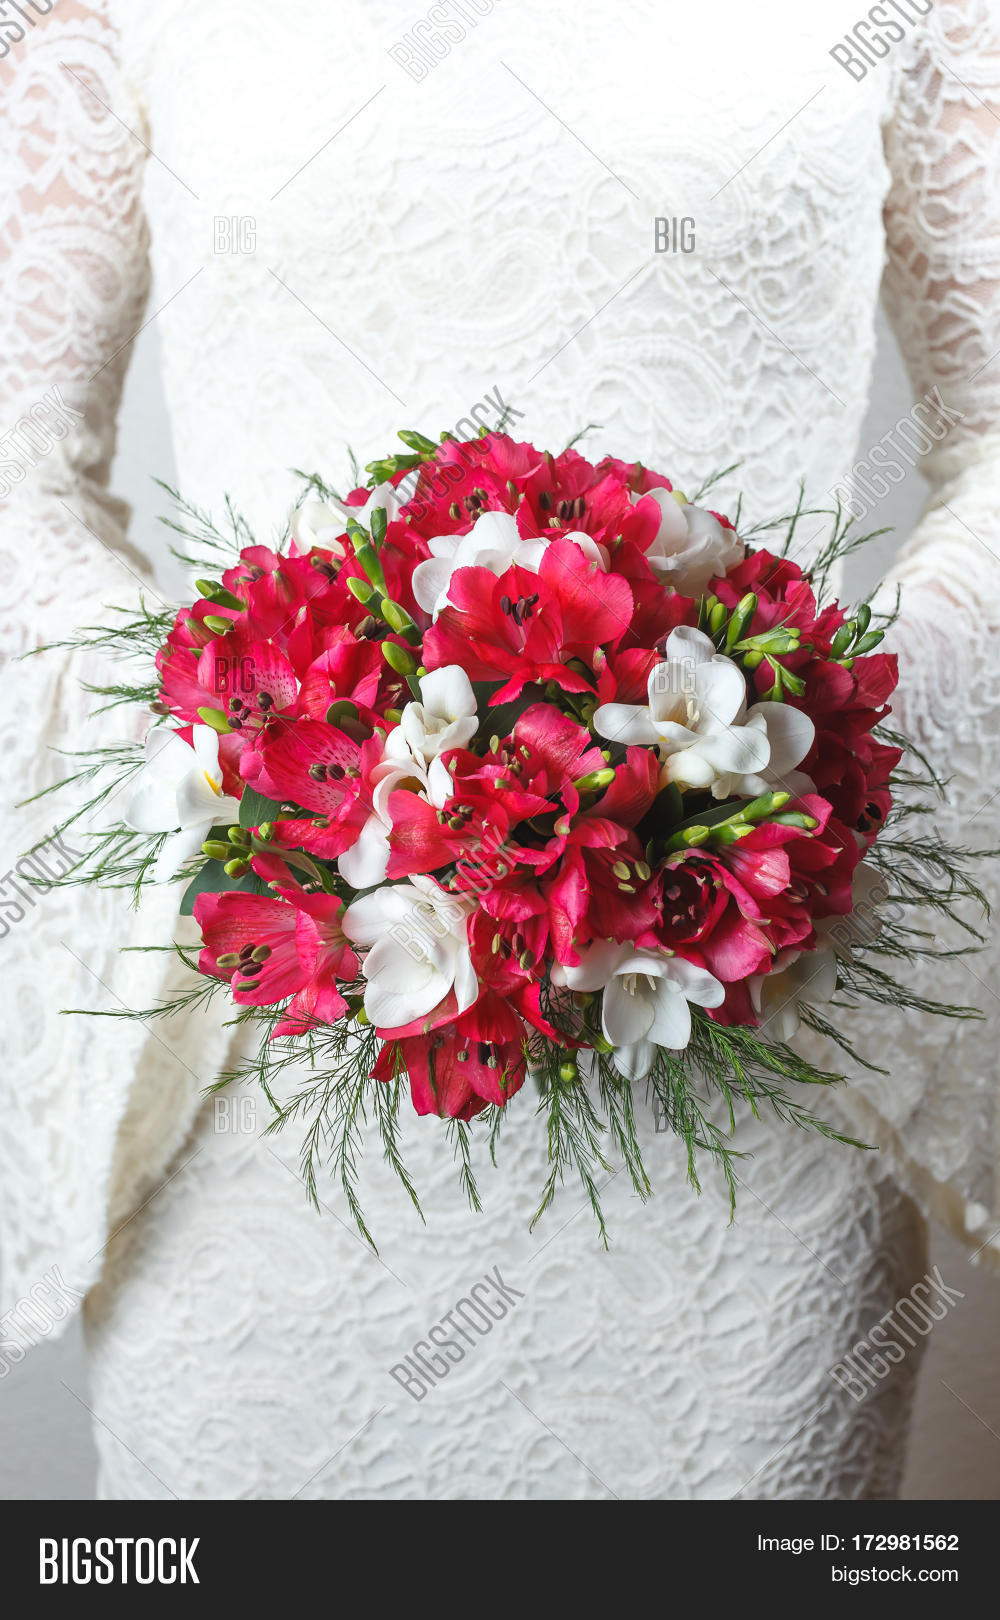 Red White Wedding Image Photo Free Trial Bigstock